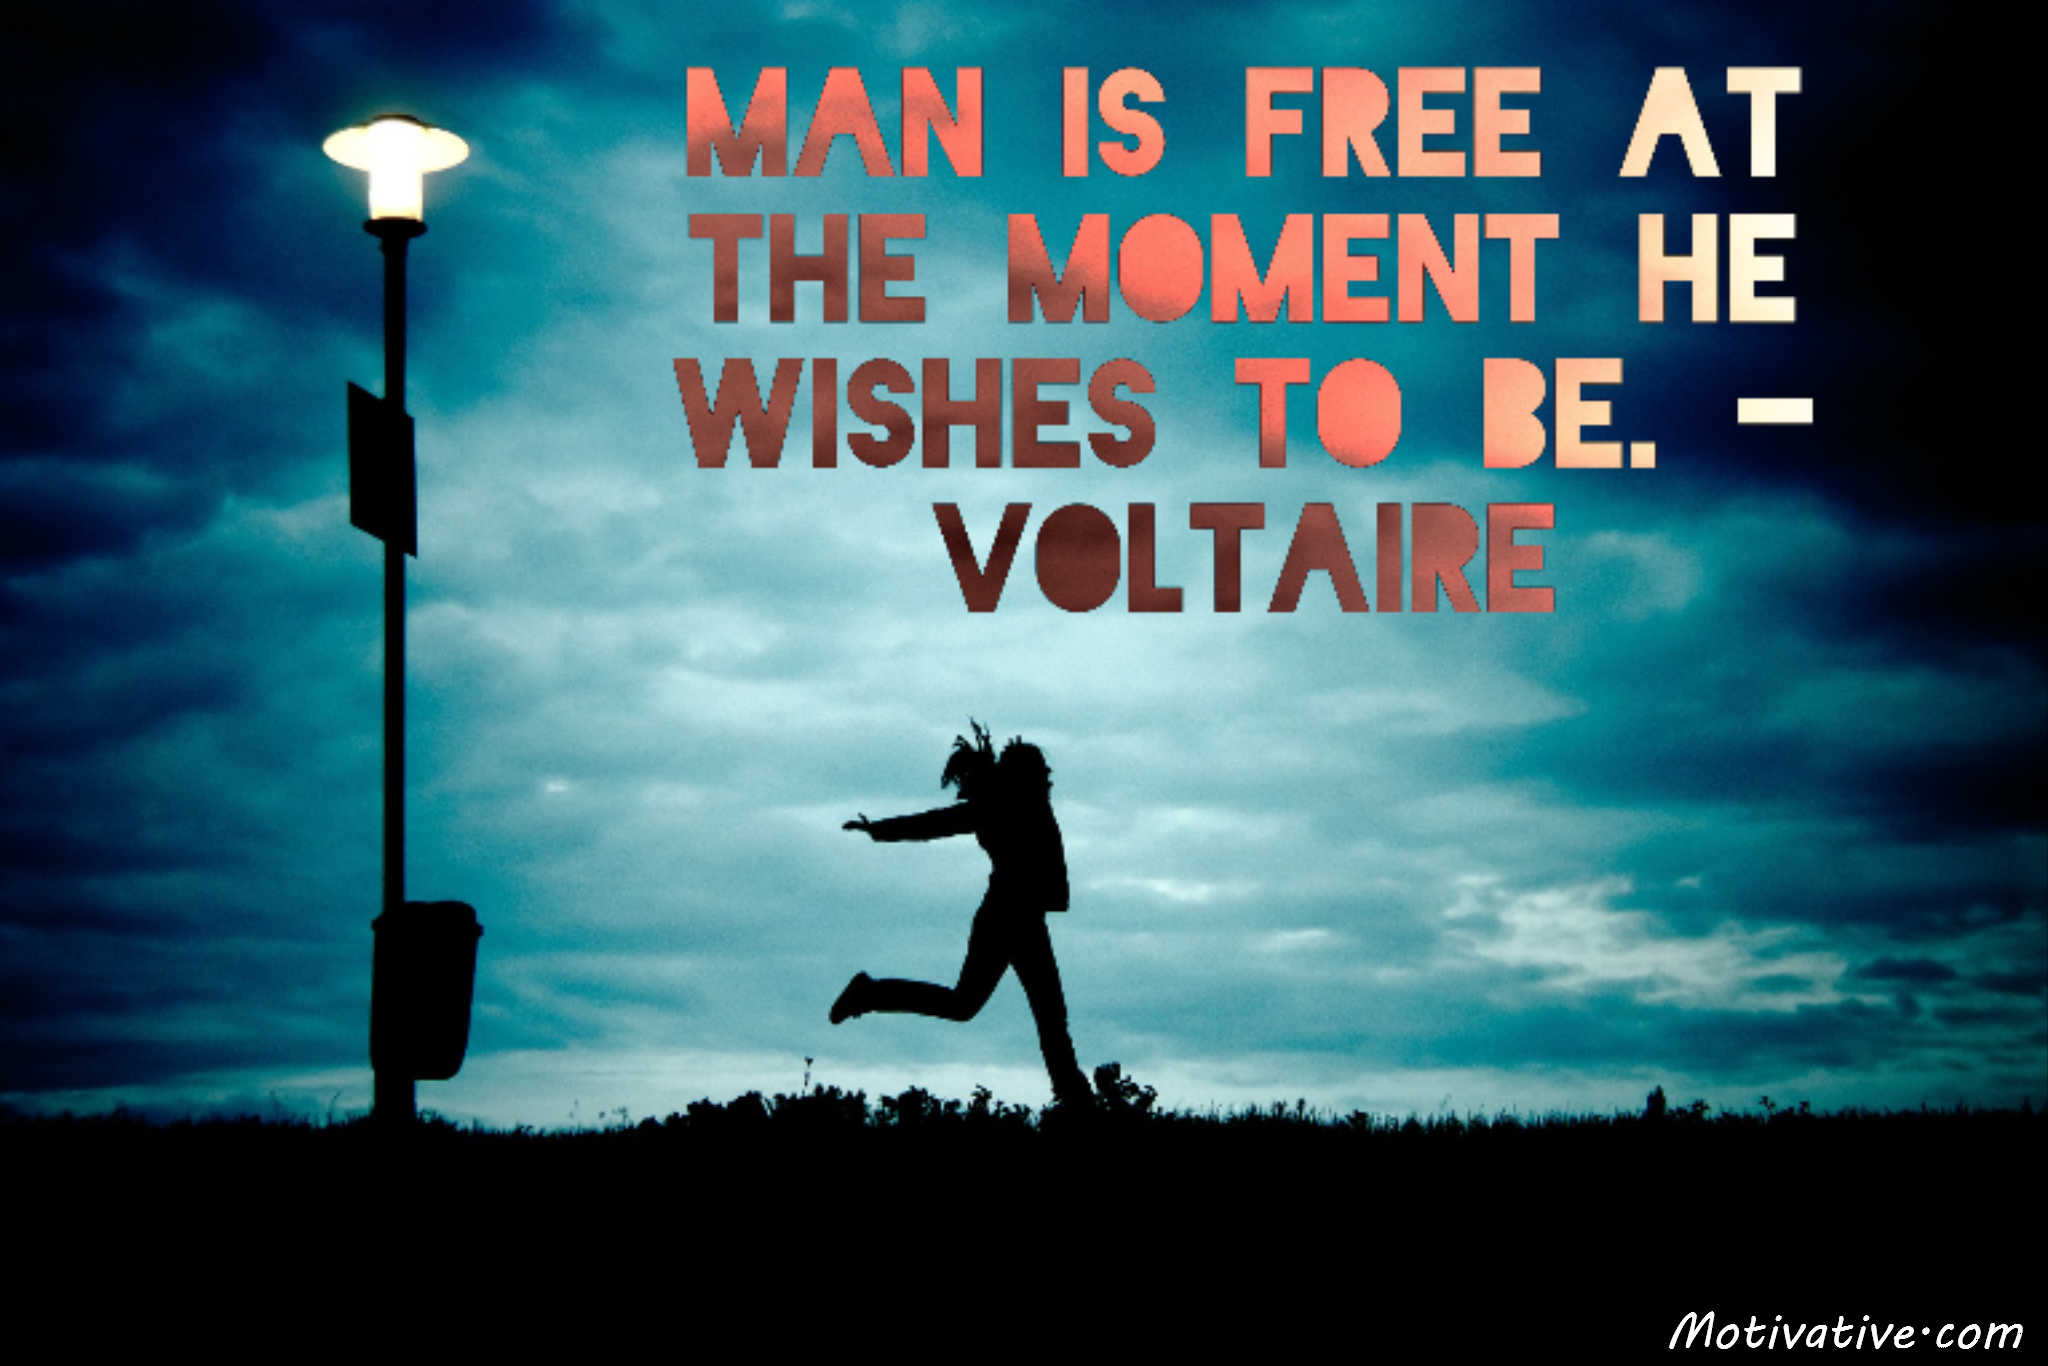 Quotes Voltaire Man Is Free At The Moment He Wishes To Be Voltaire  Motivative